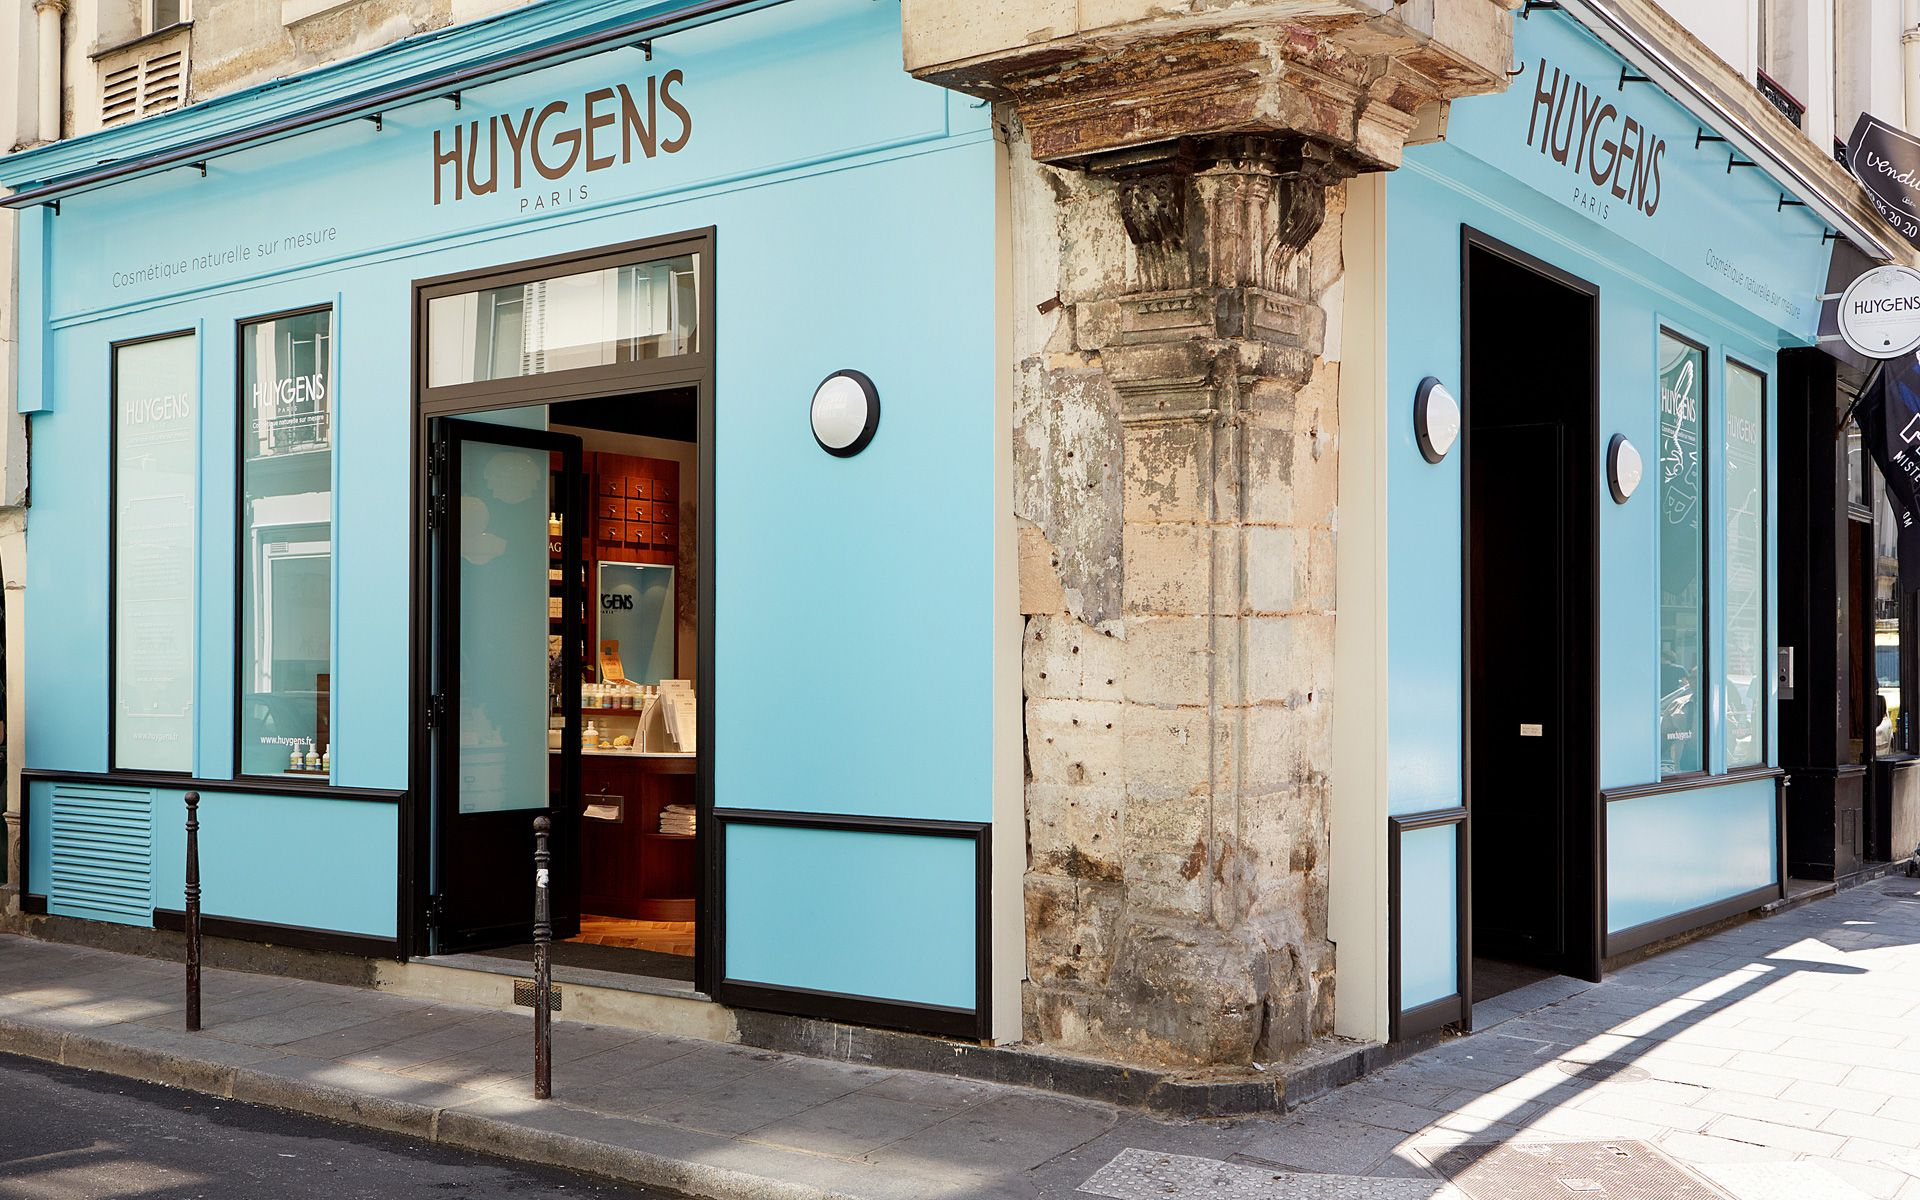 Review: French Organic Beauty Brand Huygens Has Come To Malaysia, Here's What To Expect